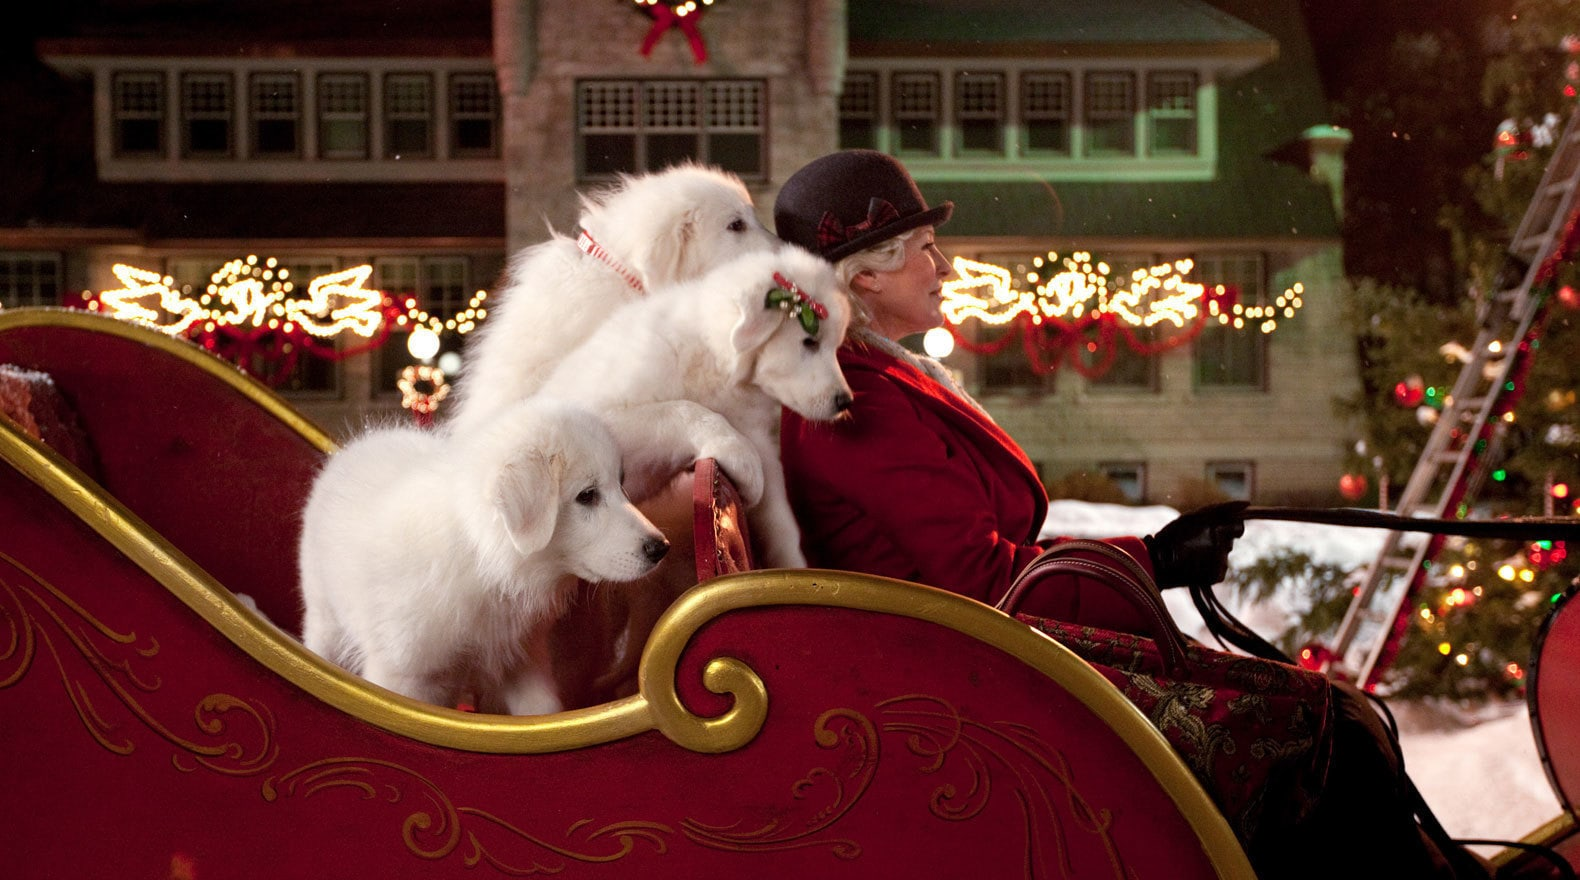 Puppies in Santa's sleigh in the movie Santa Paws 2